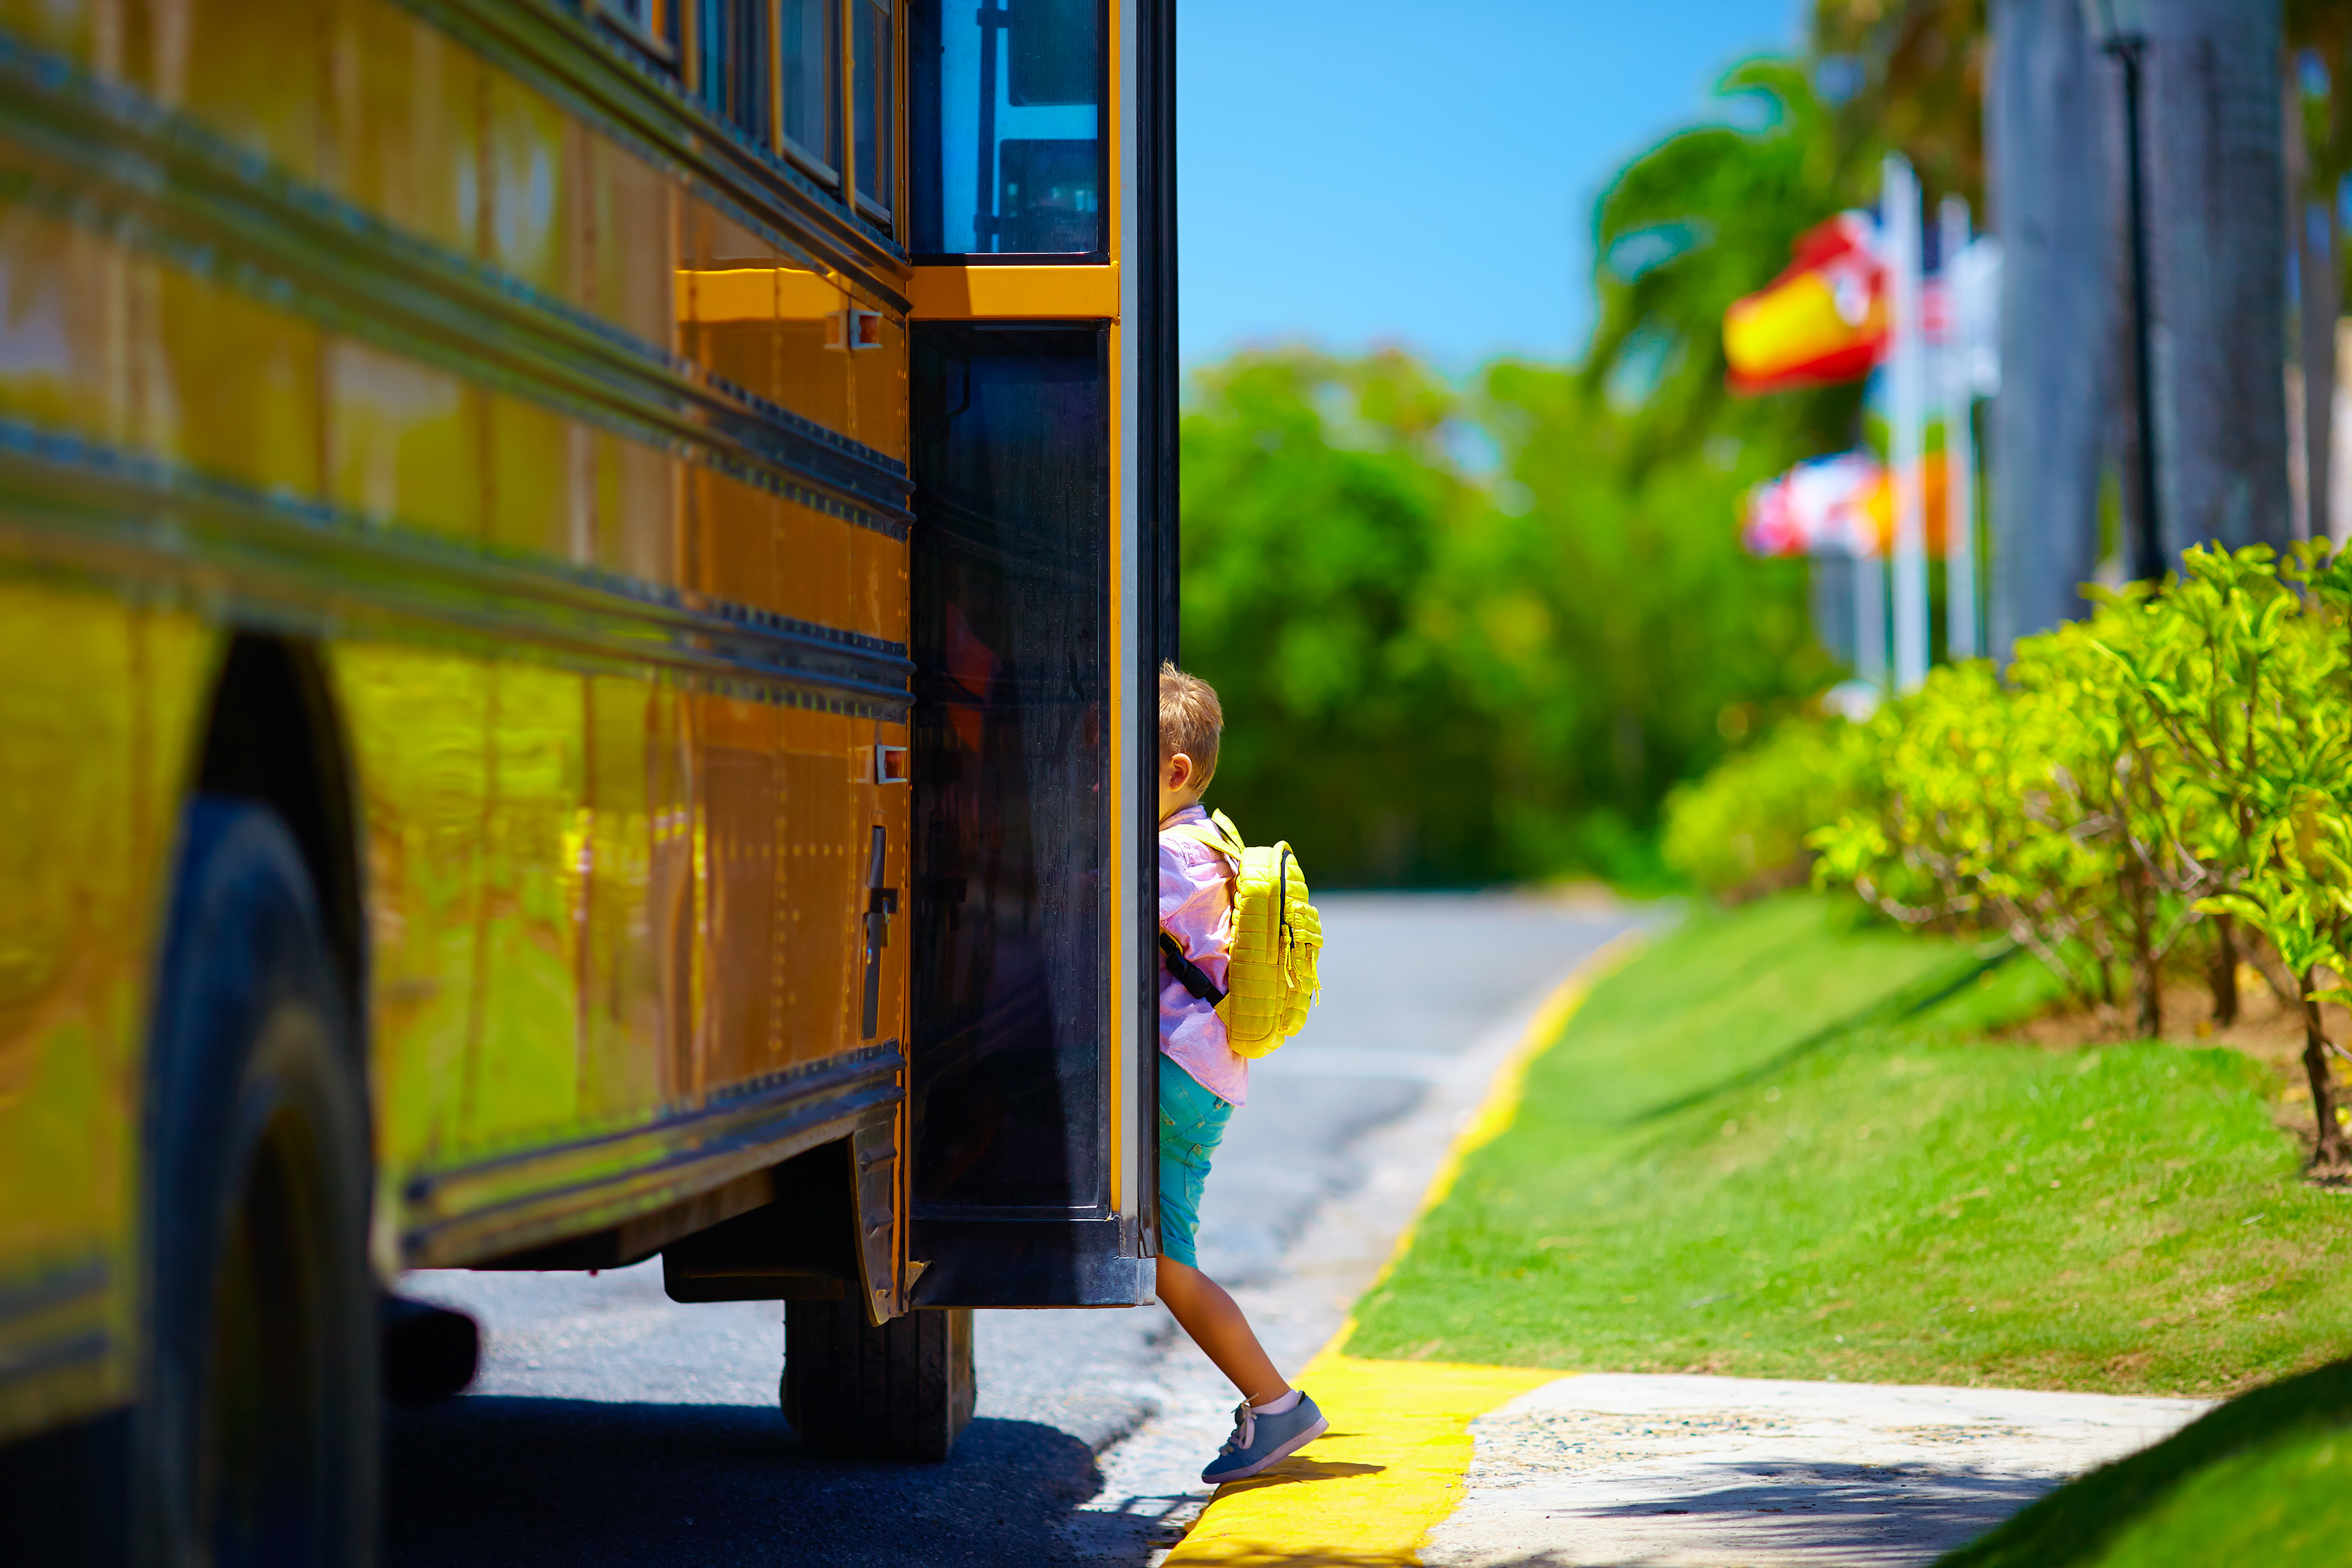 young-boy-kid-getting-on-the-schoolbus